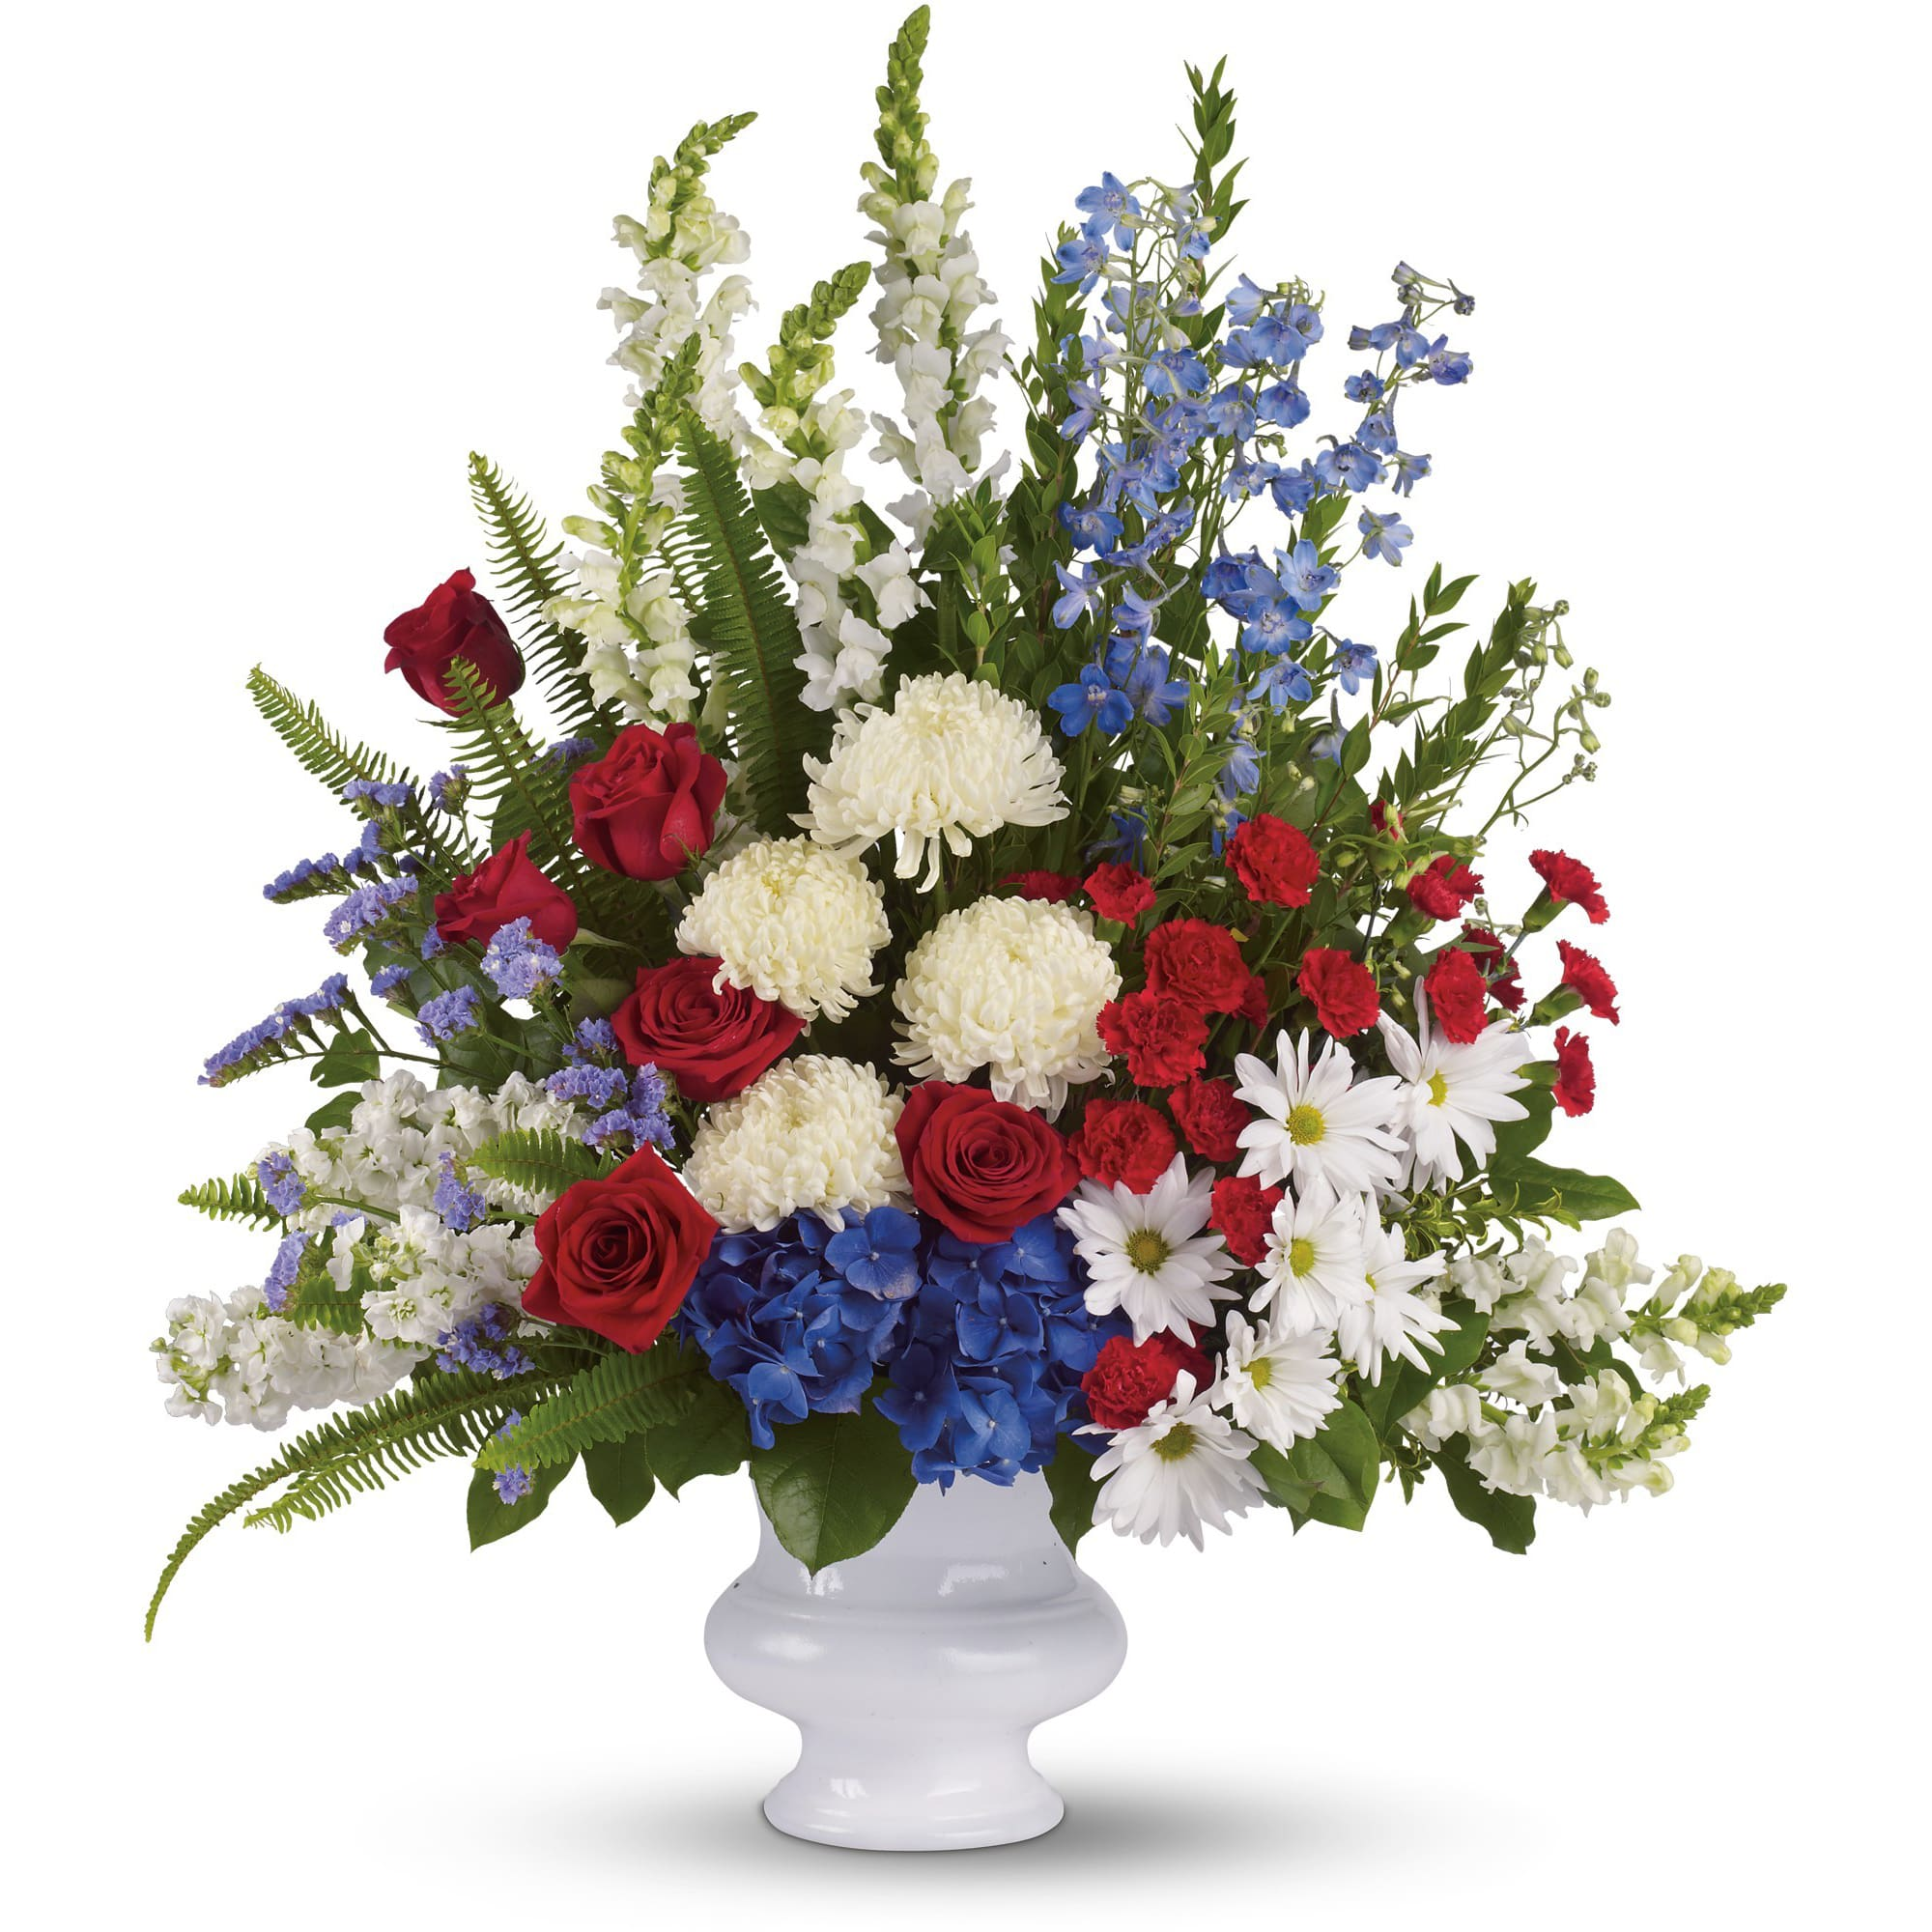 With Distinction by Teleflora - A dazzling display of patriotic red, white and blue flowers